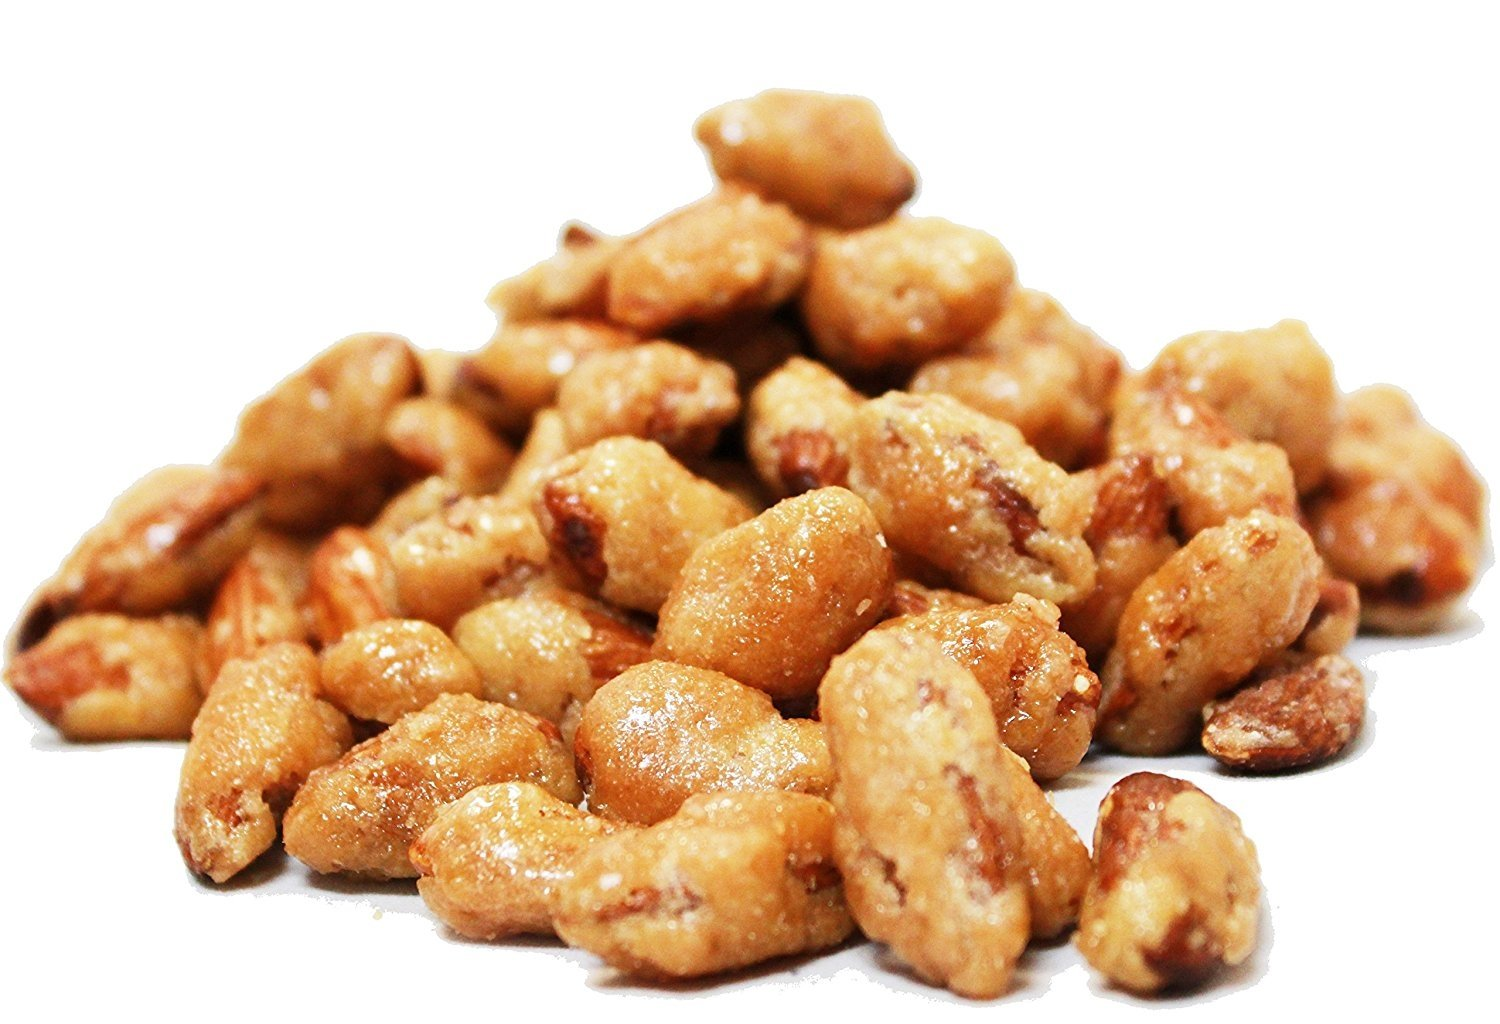 Cinnamon Flavored Toffee Covered Almonds